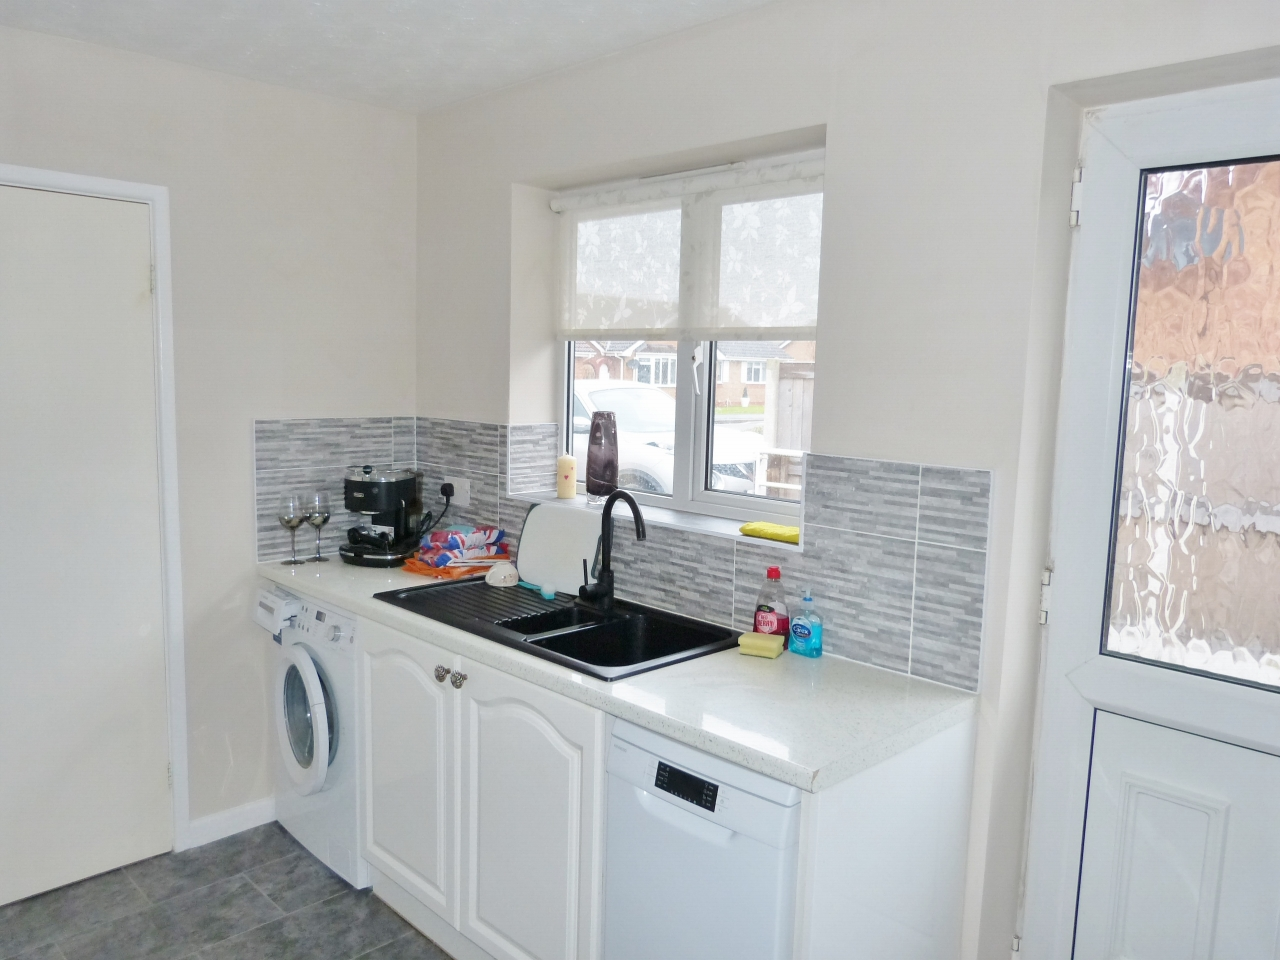 3 bedroom detached bungalow For Sale in Abergele - Photograph 6